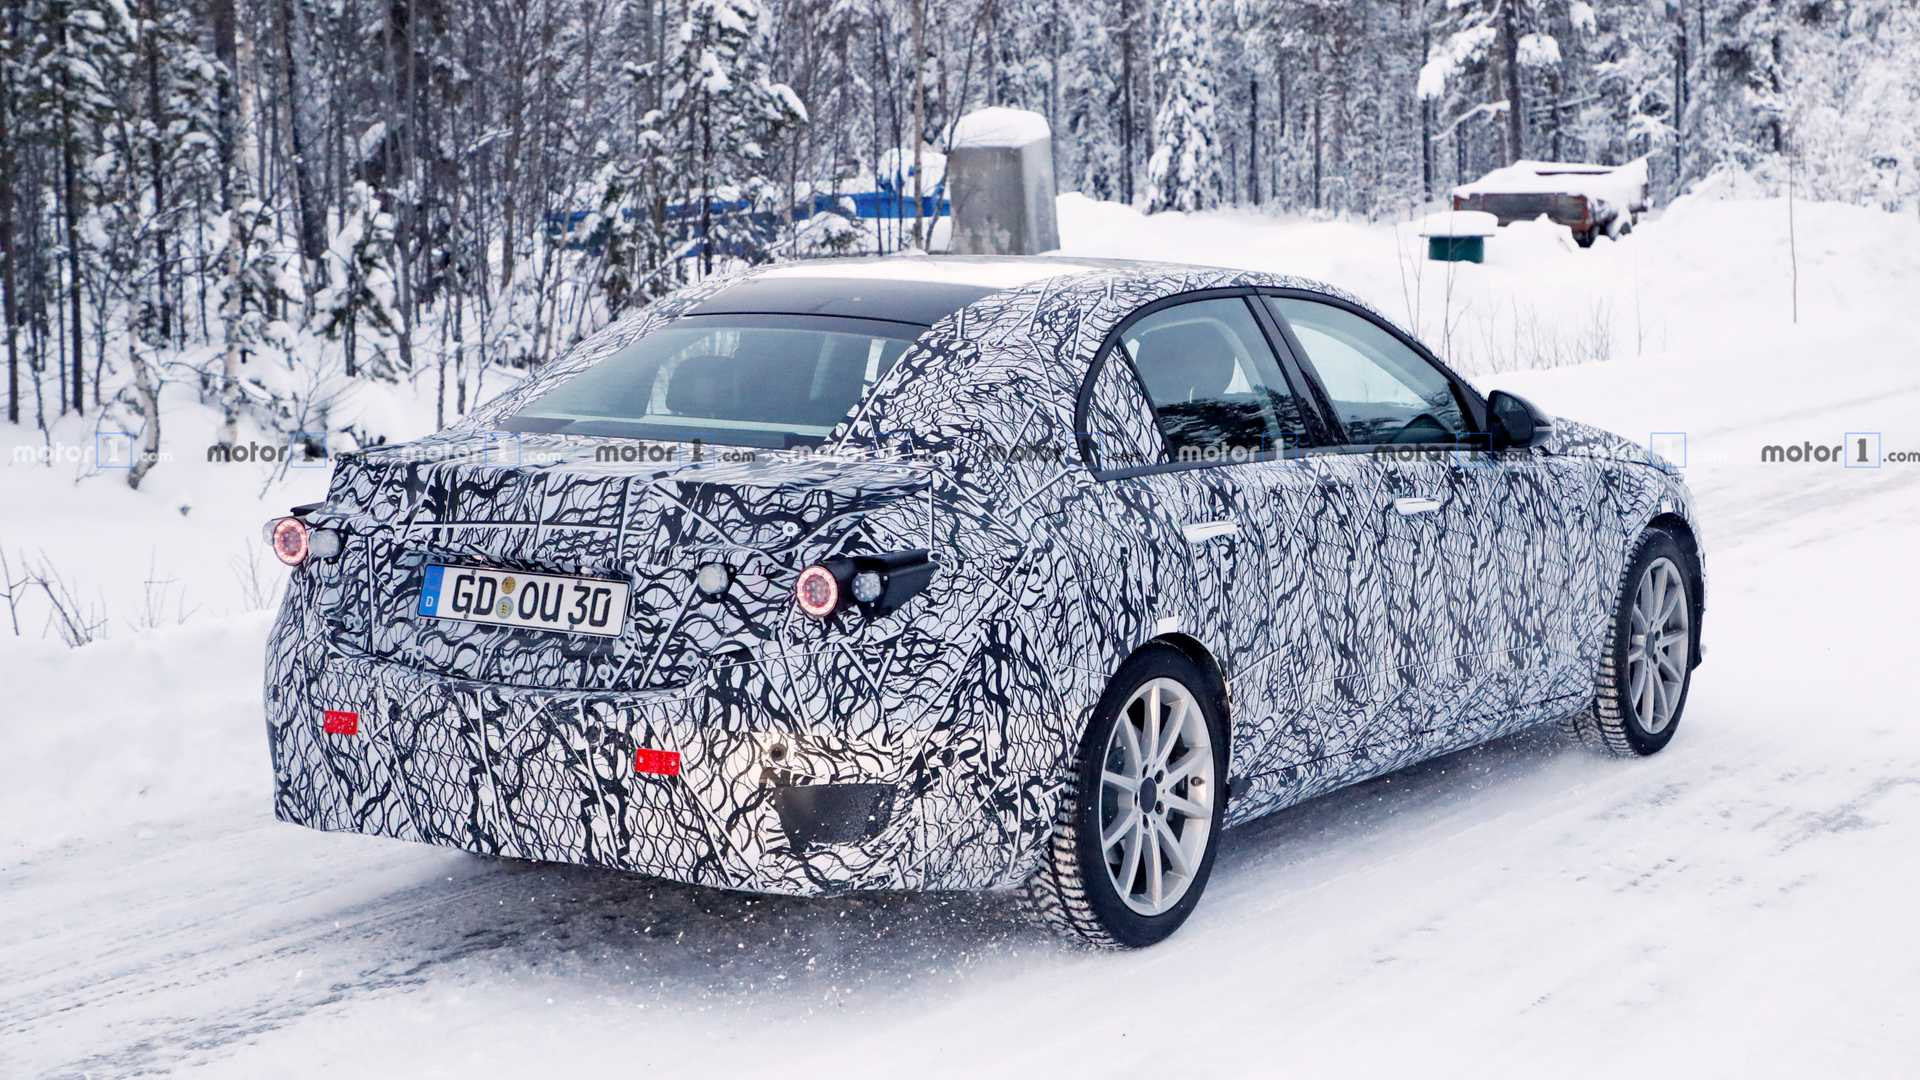 new-mercedes-benz-c-class-spy-photo.jpg